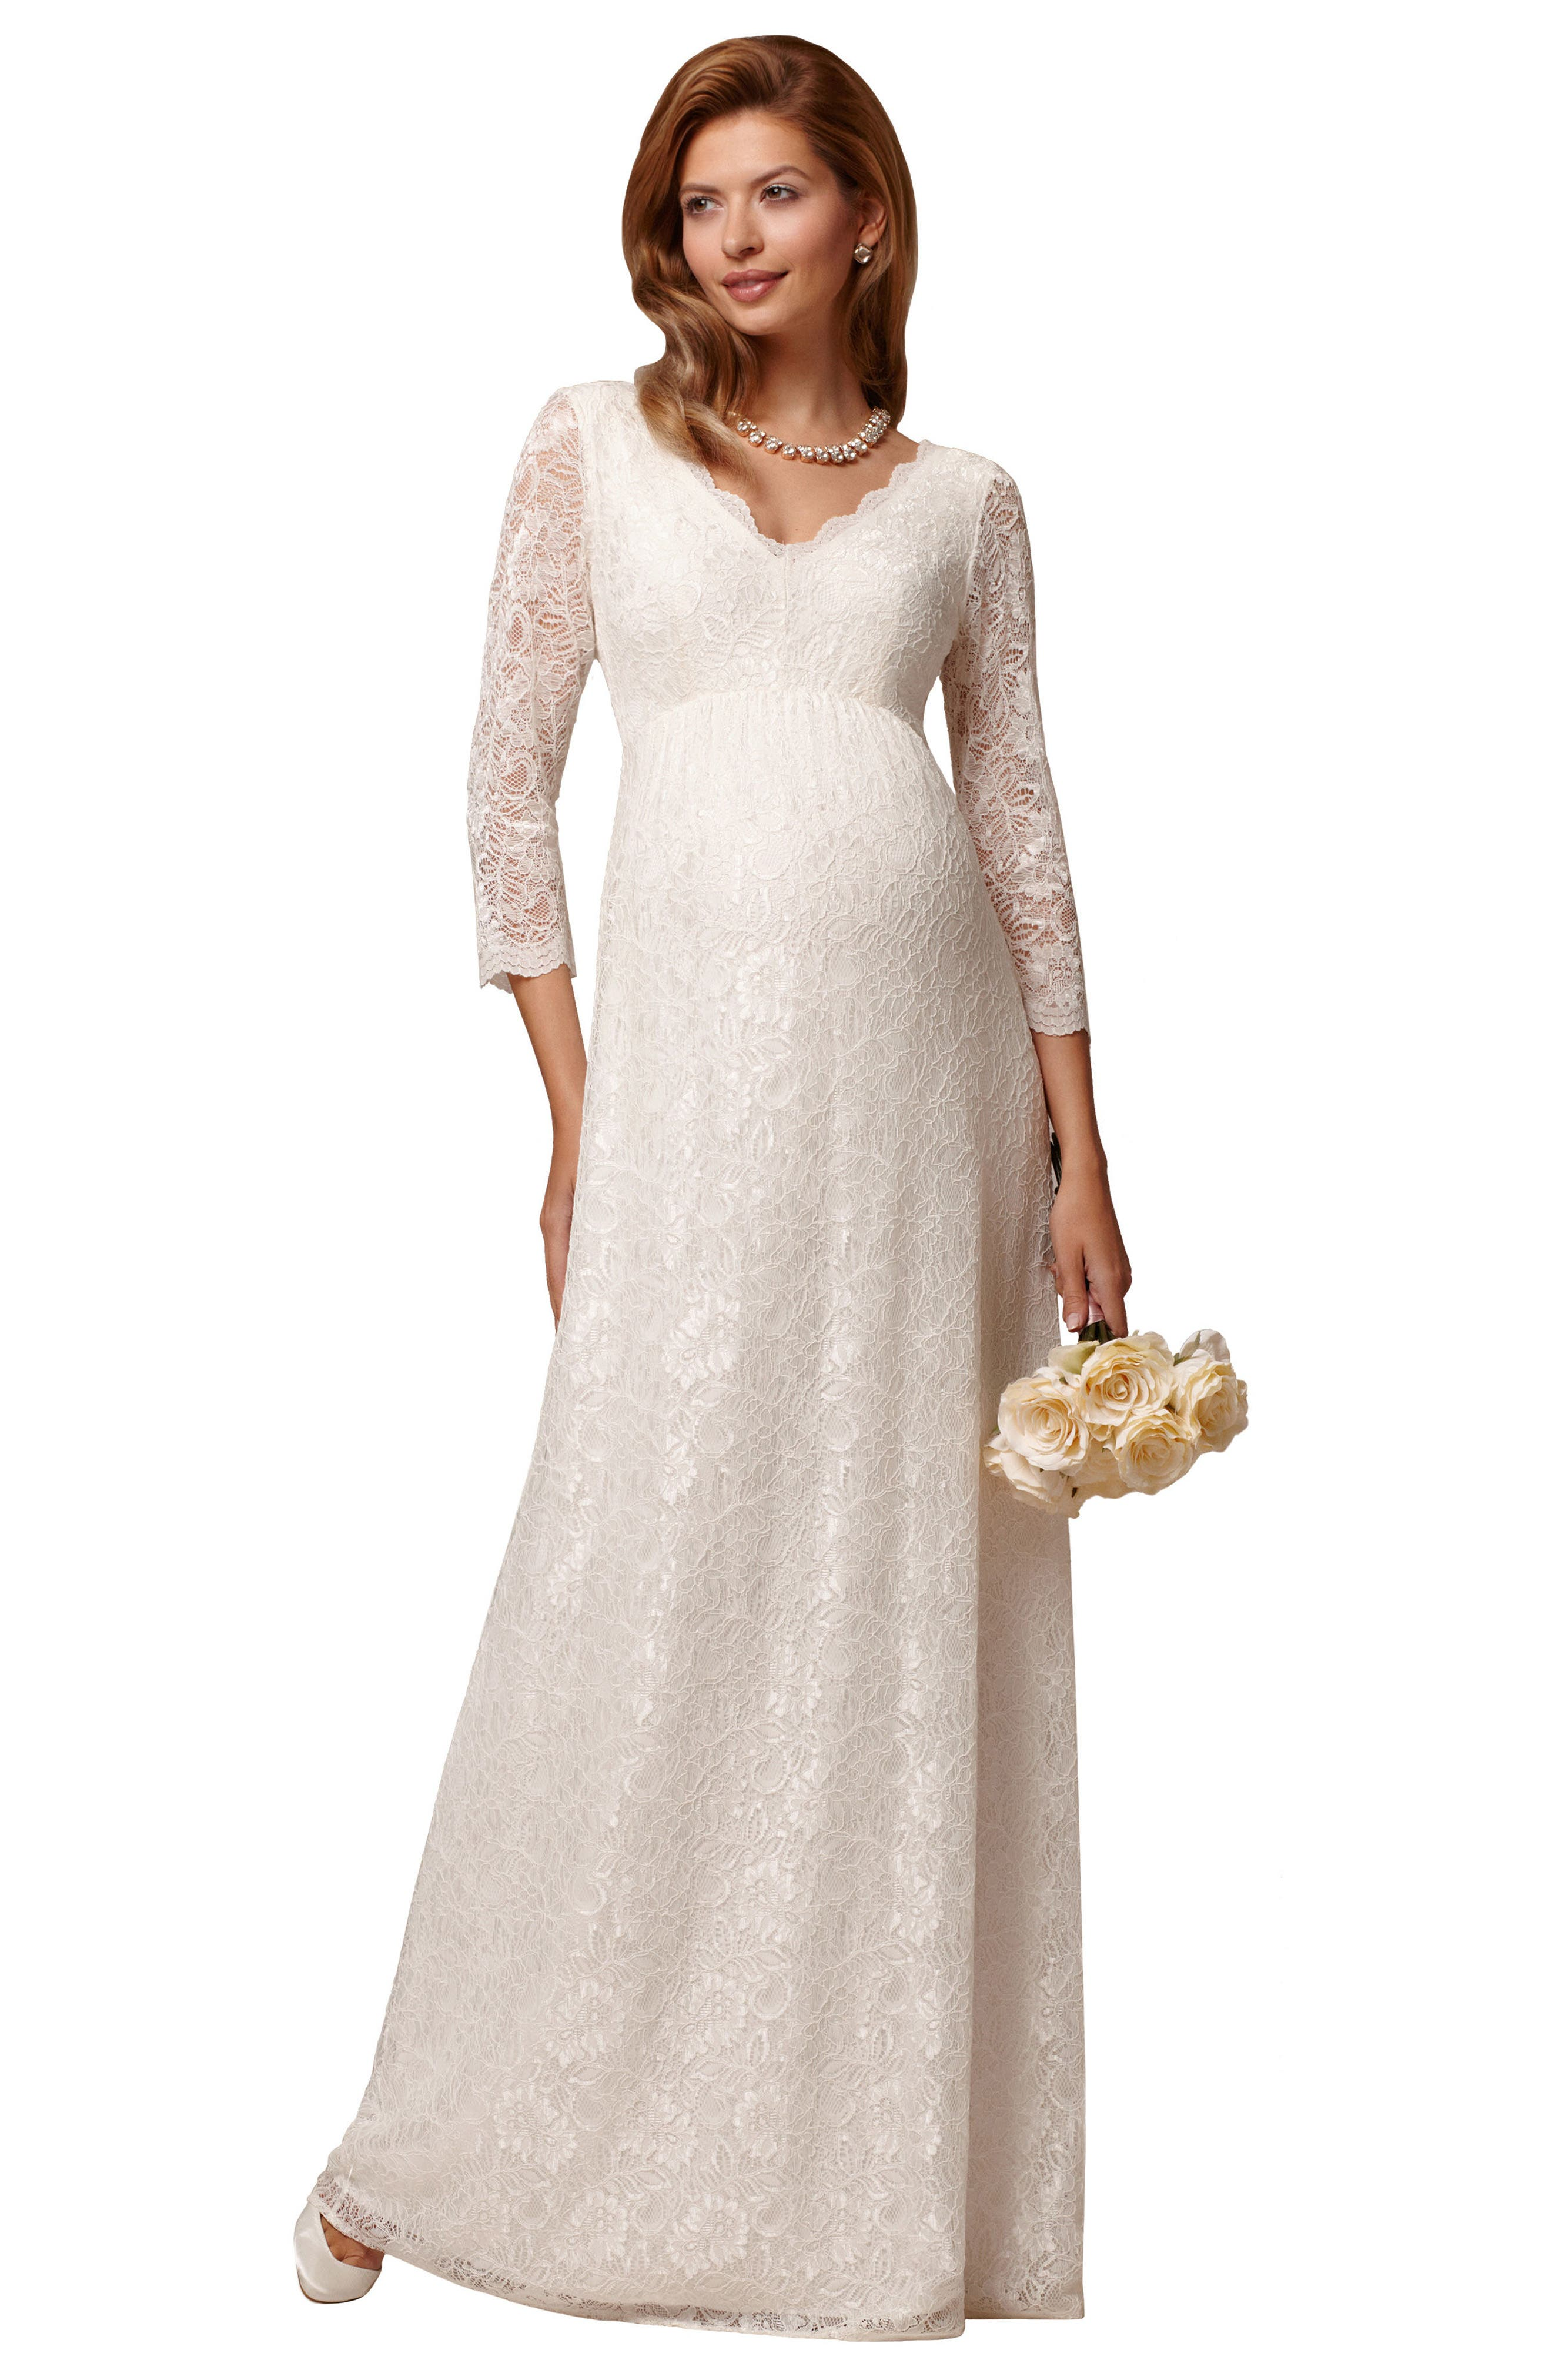 Chloe Lace Maternity Gown,                             Alternate thumbnail 3, color,                             Ivory